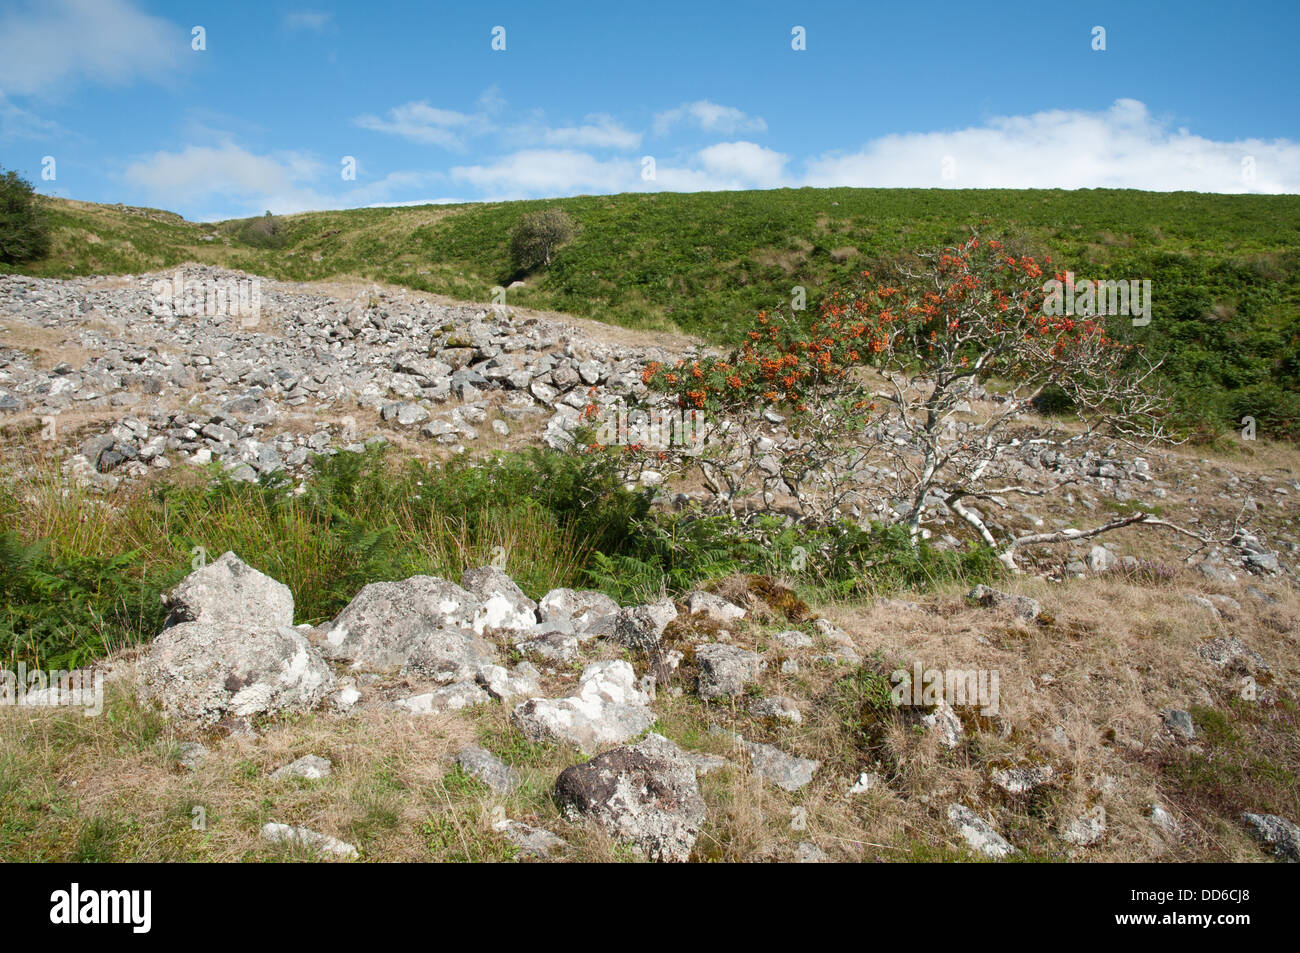 Rowan in rock spoil heap on bank of upper reaches of River Erme, view towards Stalldown - Stock Image